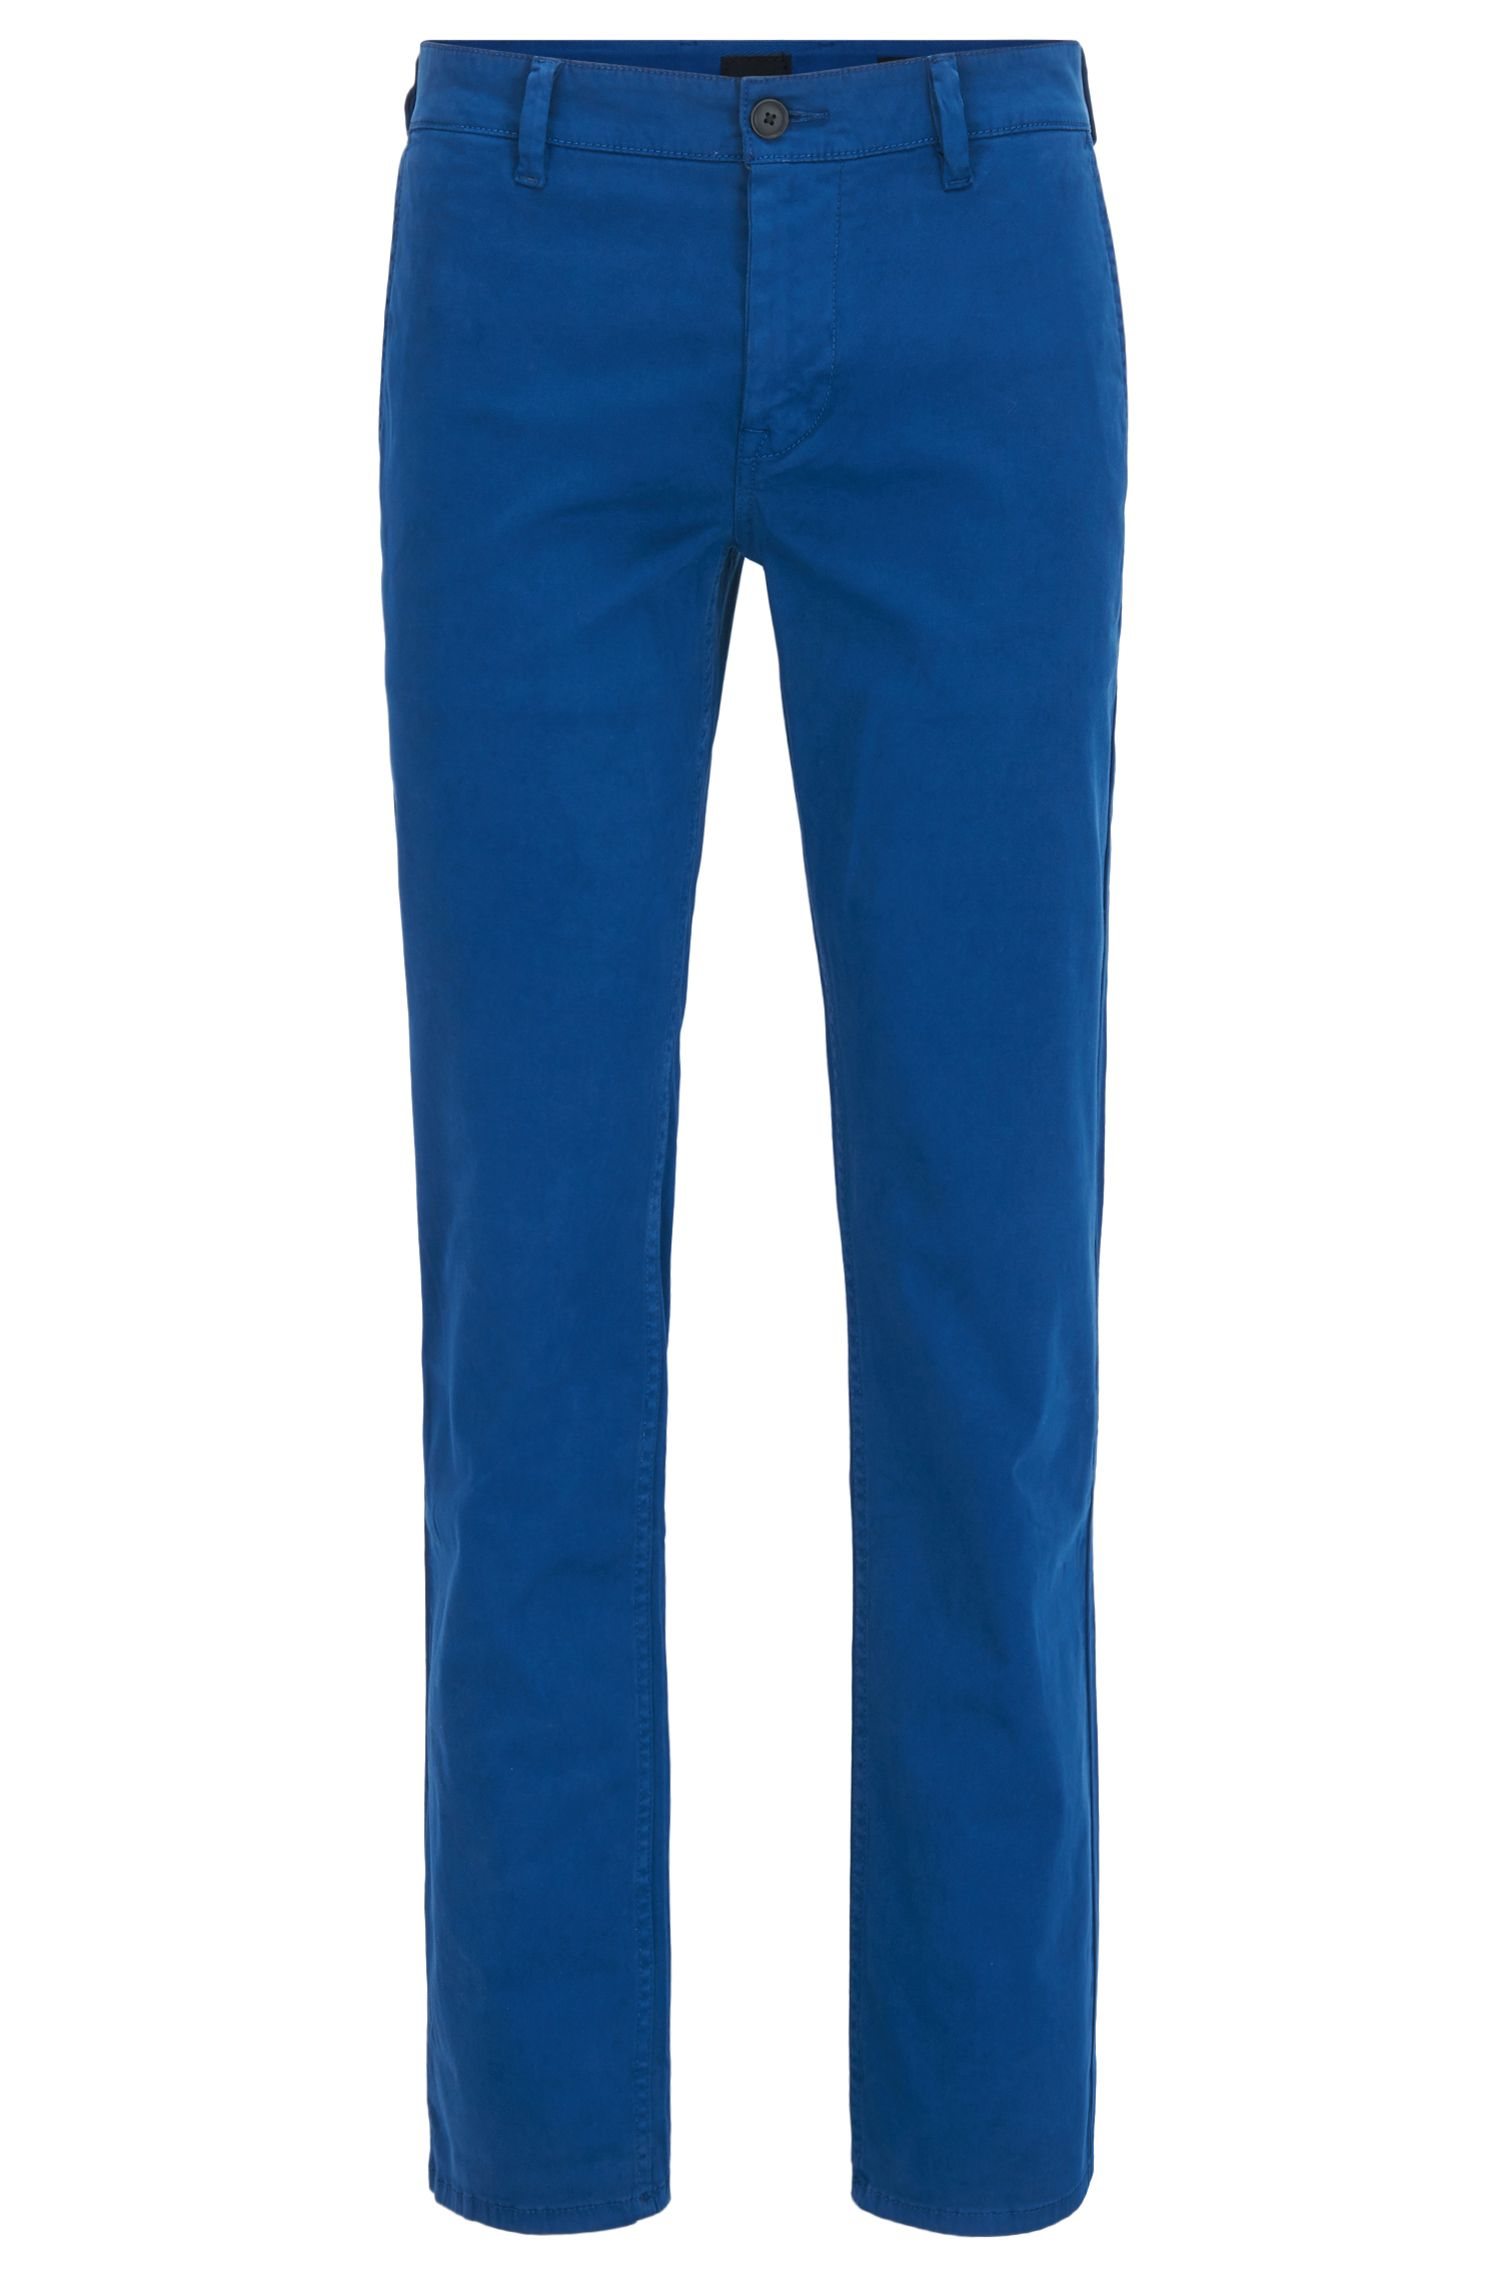 Pantalon Slim Fit en coton stretch gratté